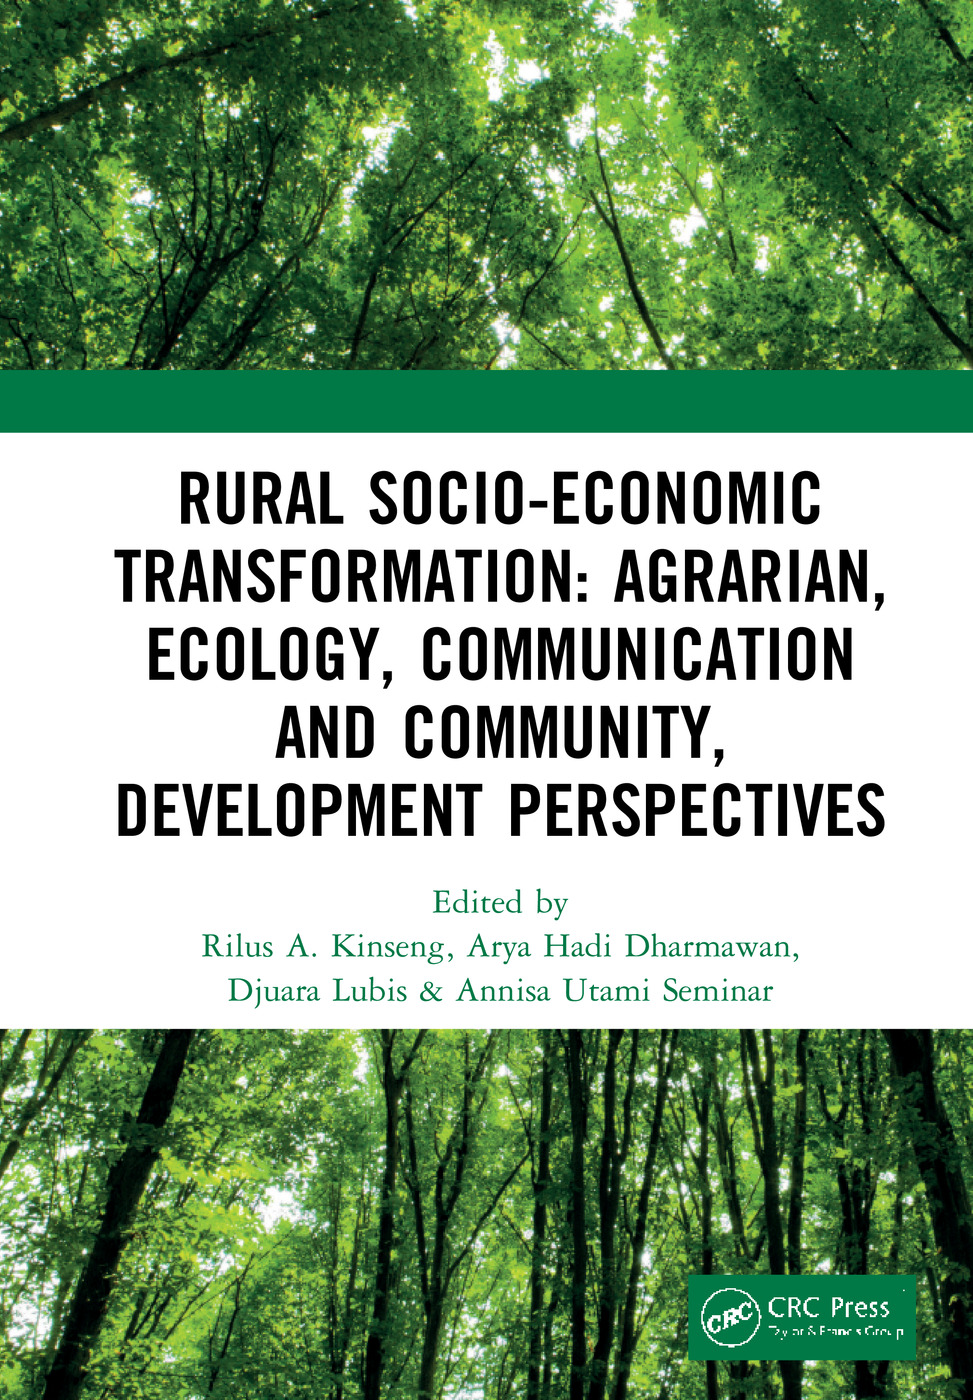 Rural Socio-Economic Transformation: Agrarian, Ecology, Communication and Community, Development Perspectives: Proceedings of the International Confernece on Rural Socio-Economic Transformation: Agrarian, Ecology, Communication and Community Development Perspectives (RUSET 2018), November 14-15, 2018, Bogor, West Java, Indonesia book cover